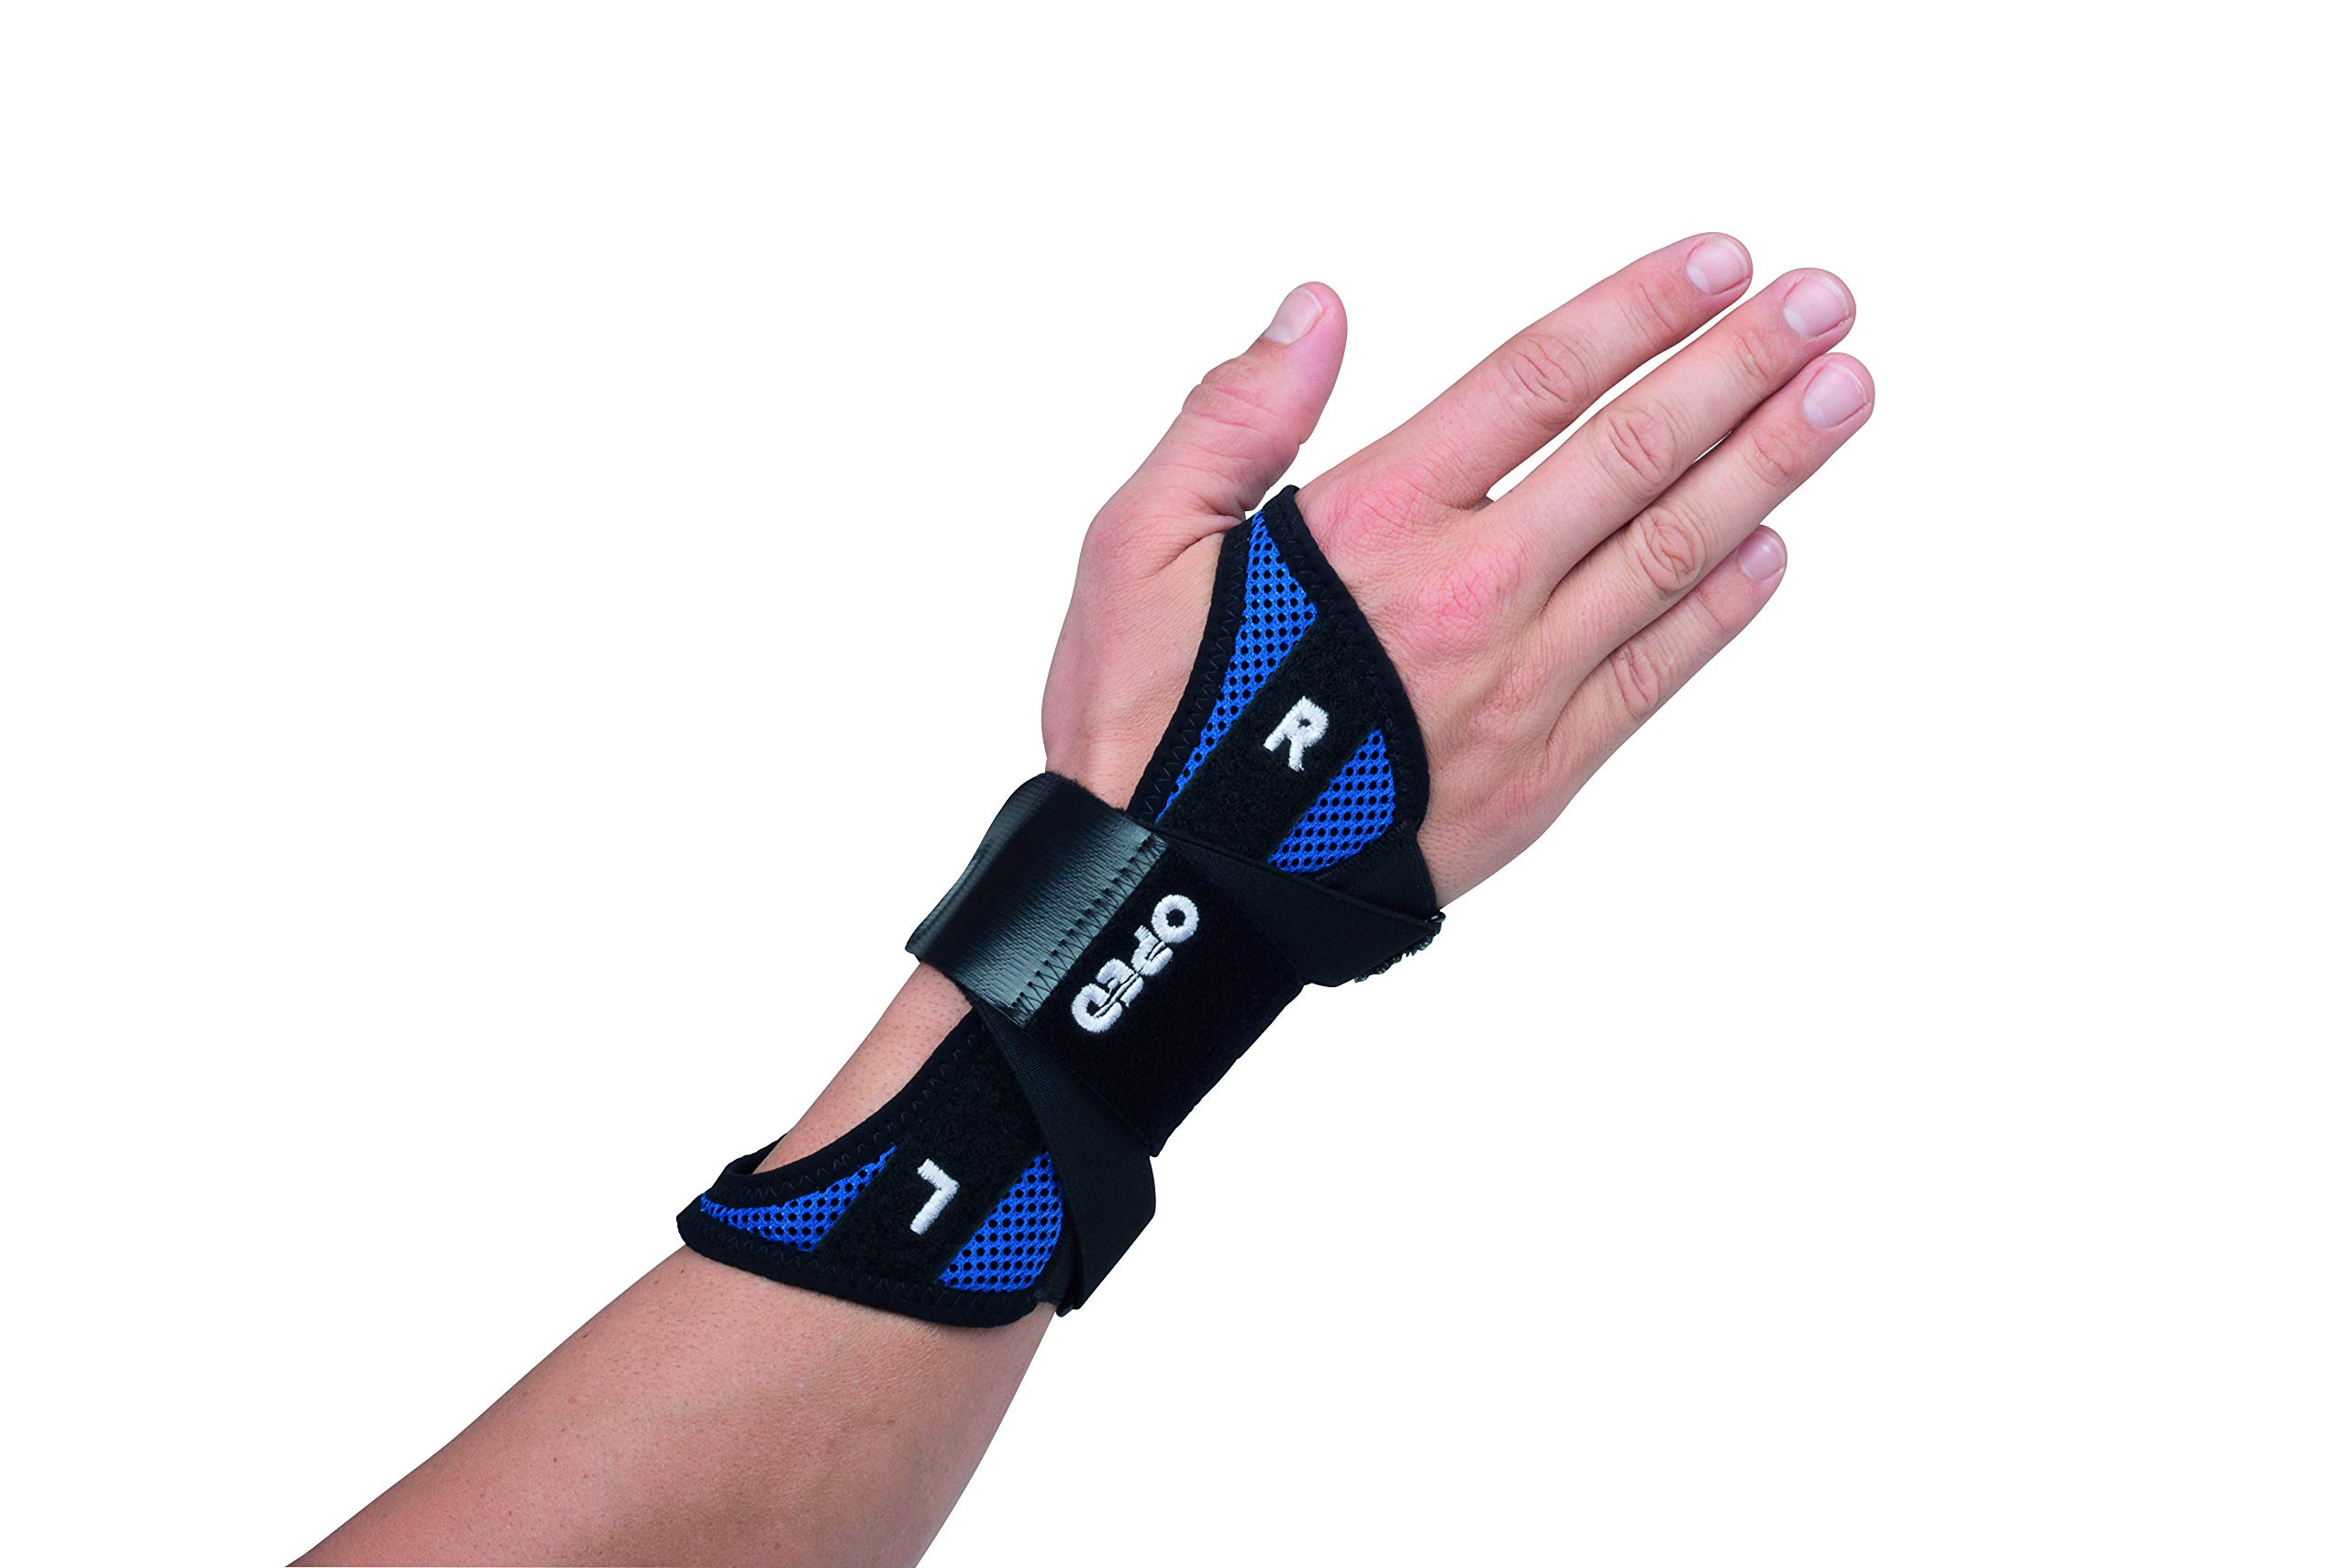 SUPROHand - Stabilising Wrist orthosis, usable on Either Hand by VACO